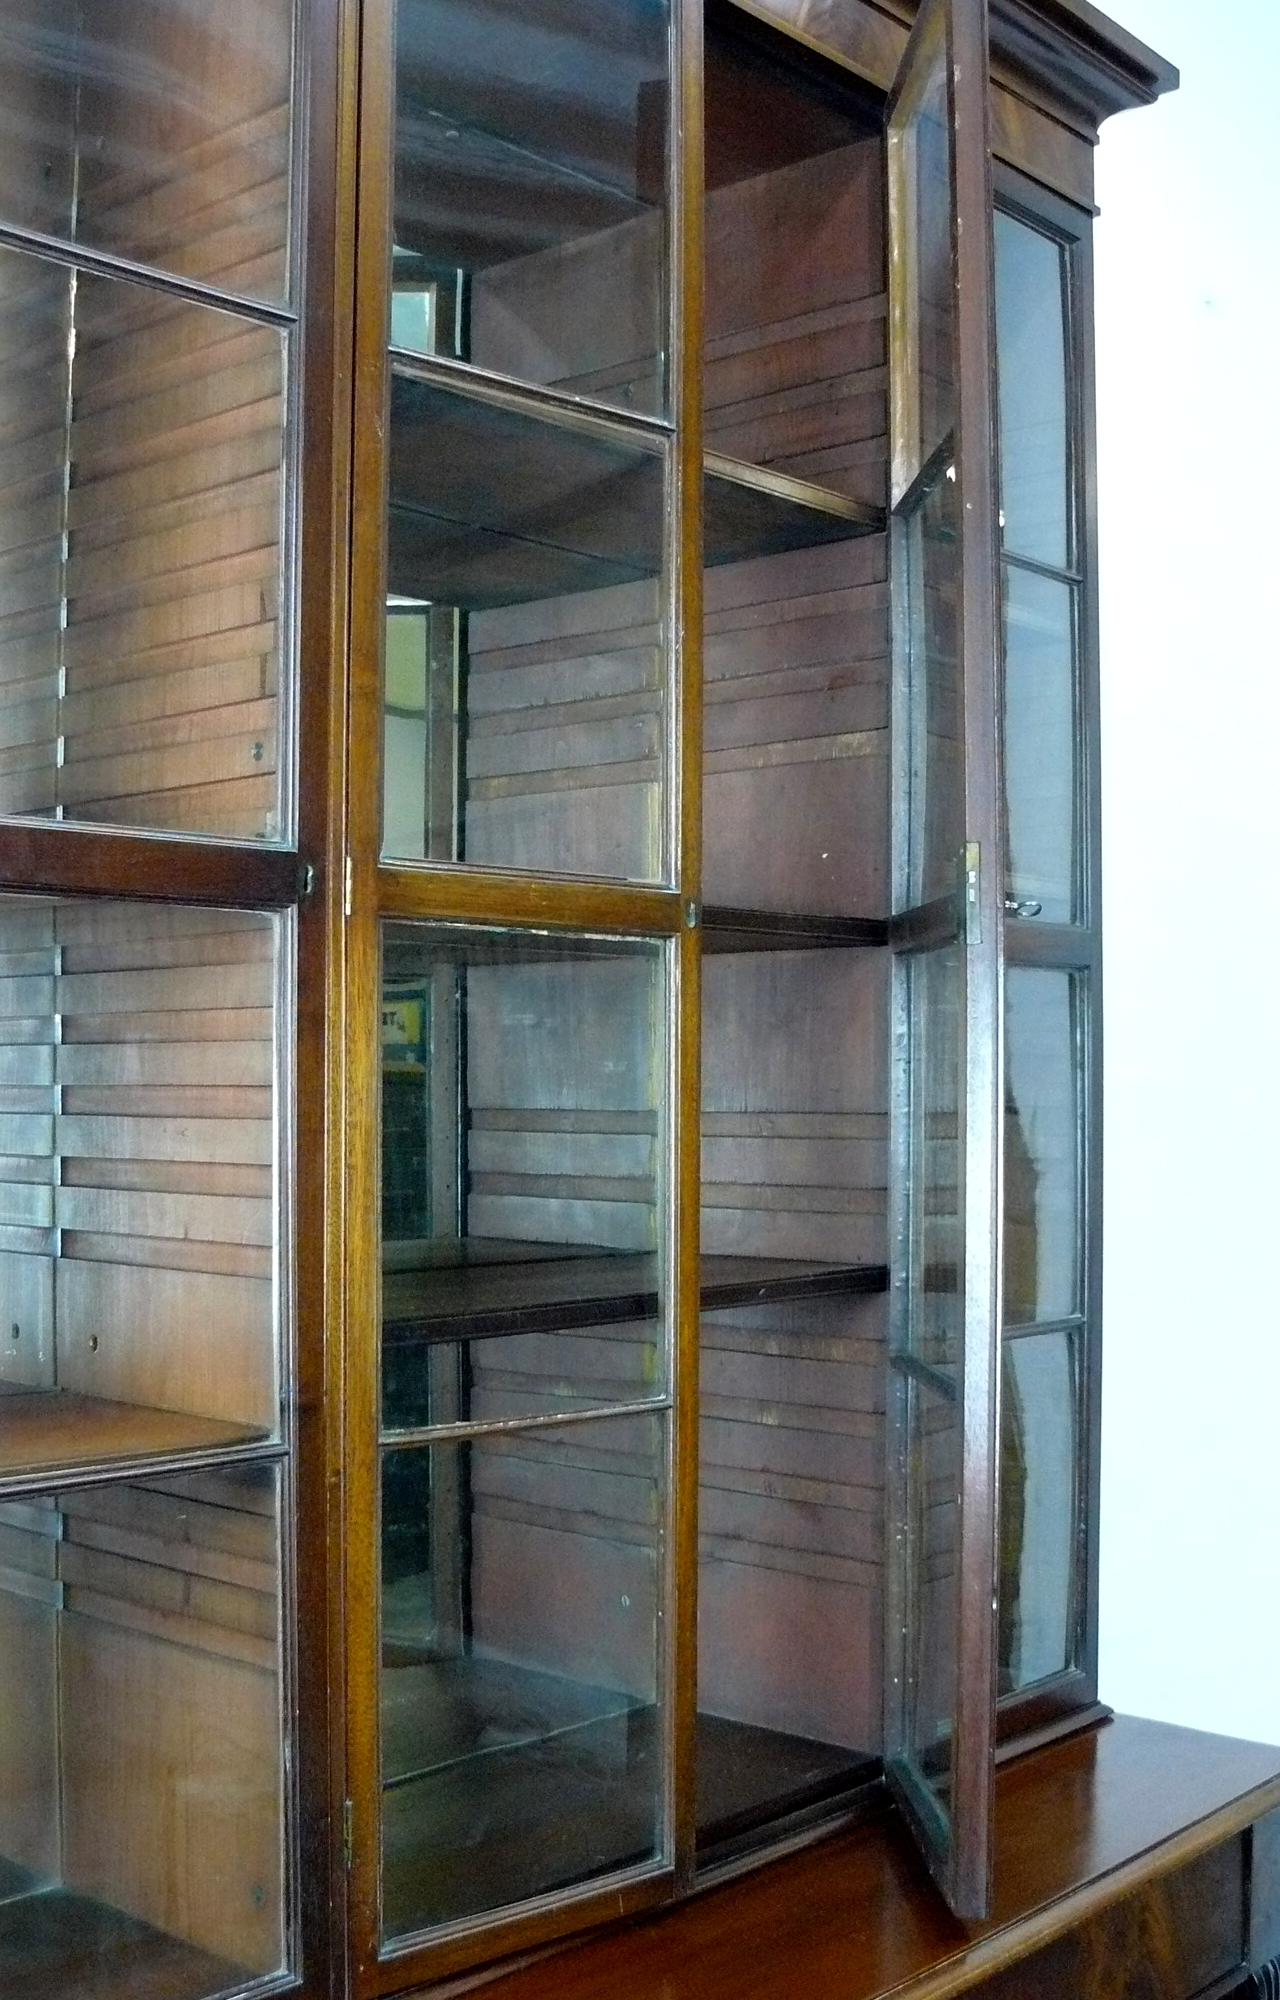 A Lovely Large Edwardian Mahogany Shop Home Display Cabinet Original Mirrors